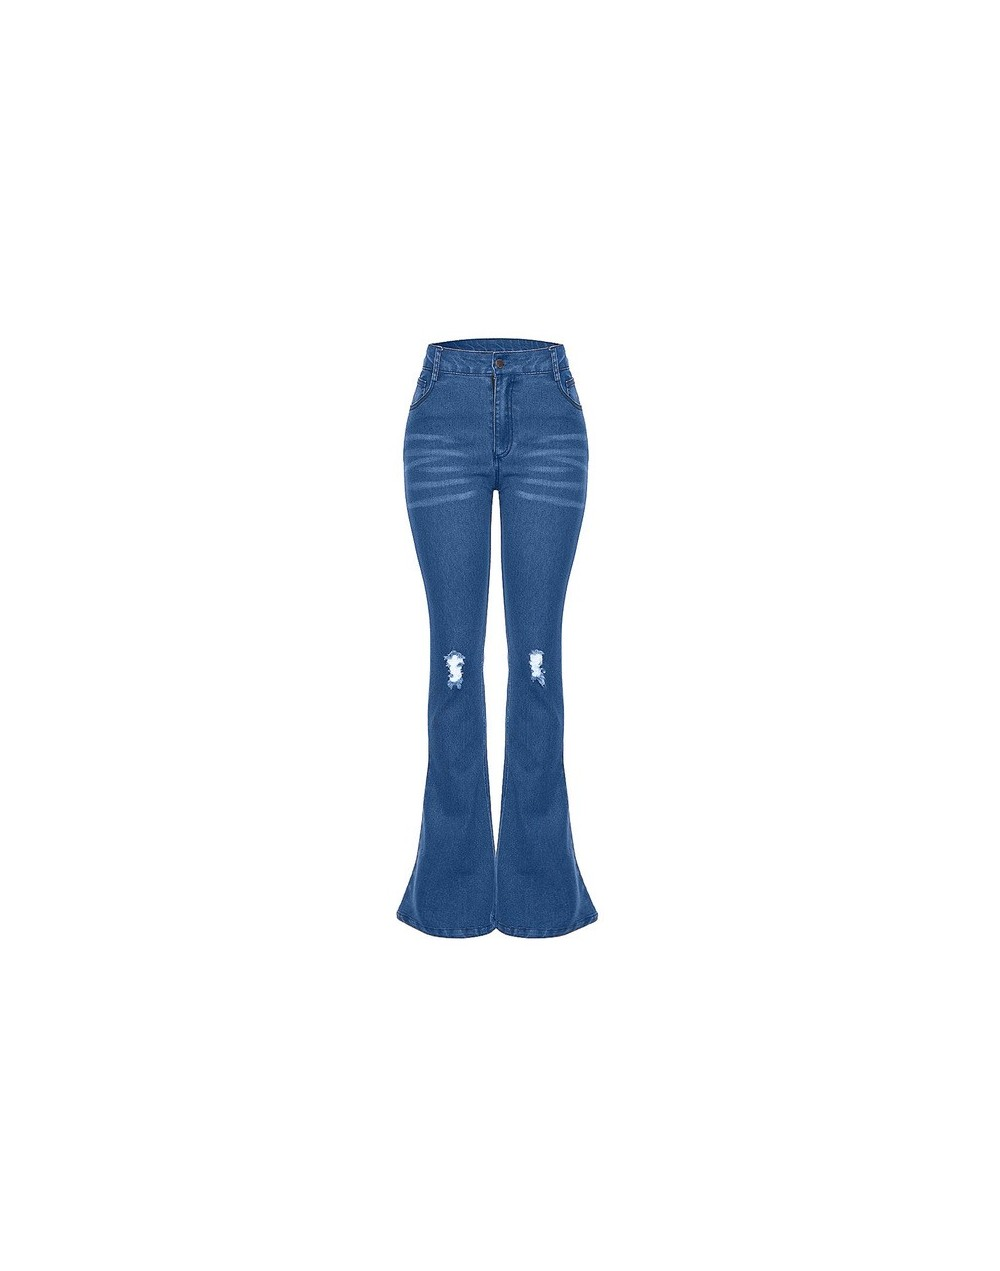 Fashion Women Denim Flare Pants Women Retro Ripped Jeans Wide Leg Trousers Lady Casual Bell-Bottoms sexy Flare Pant Female m...